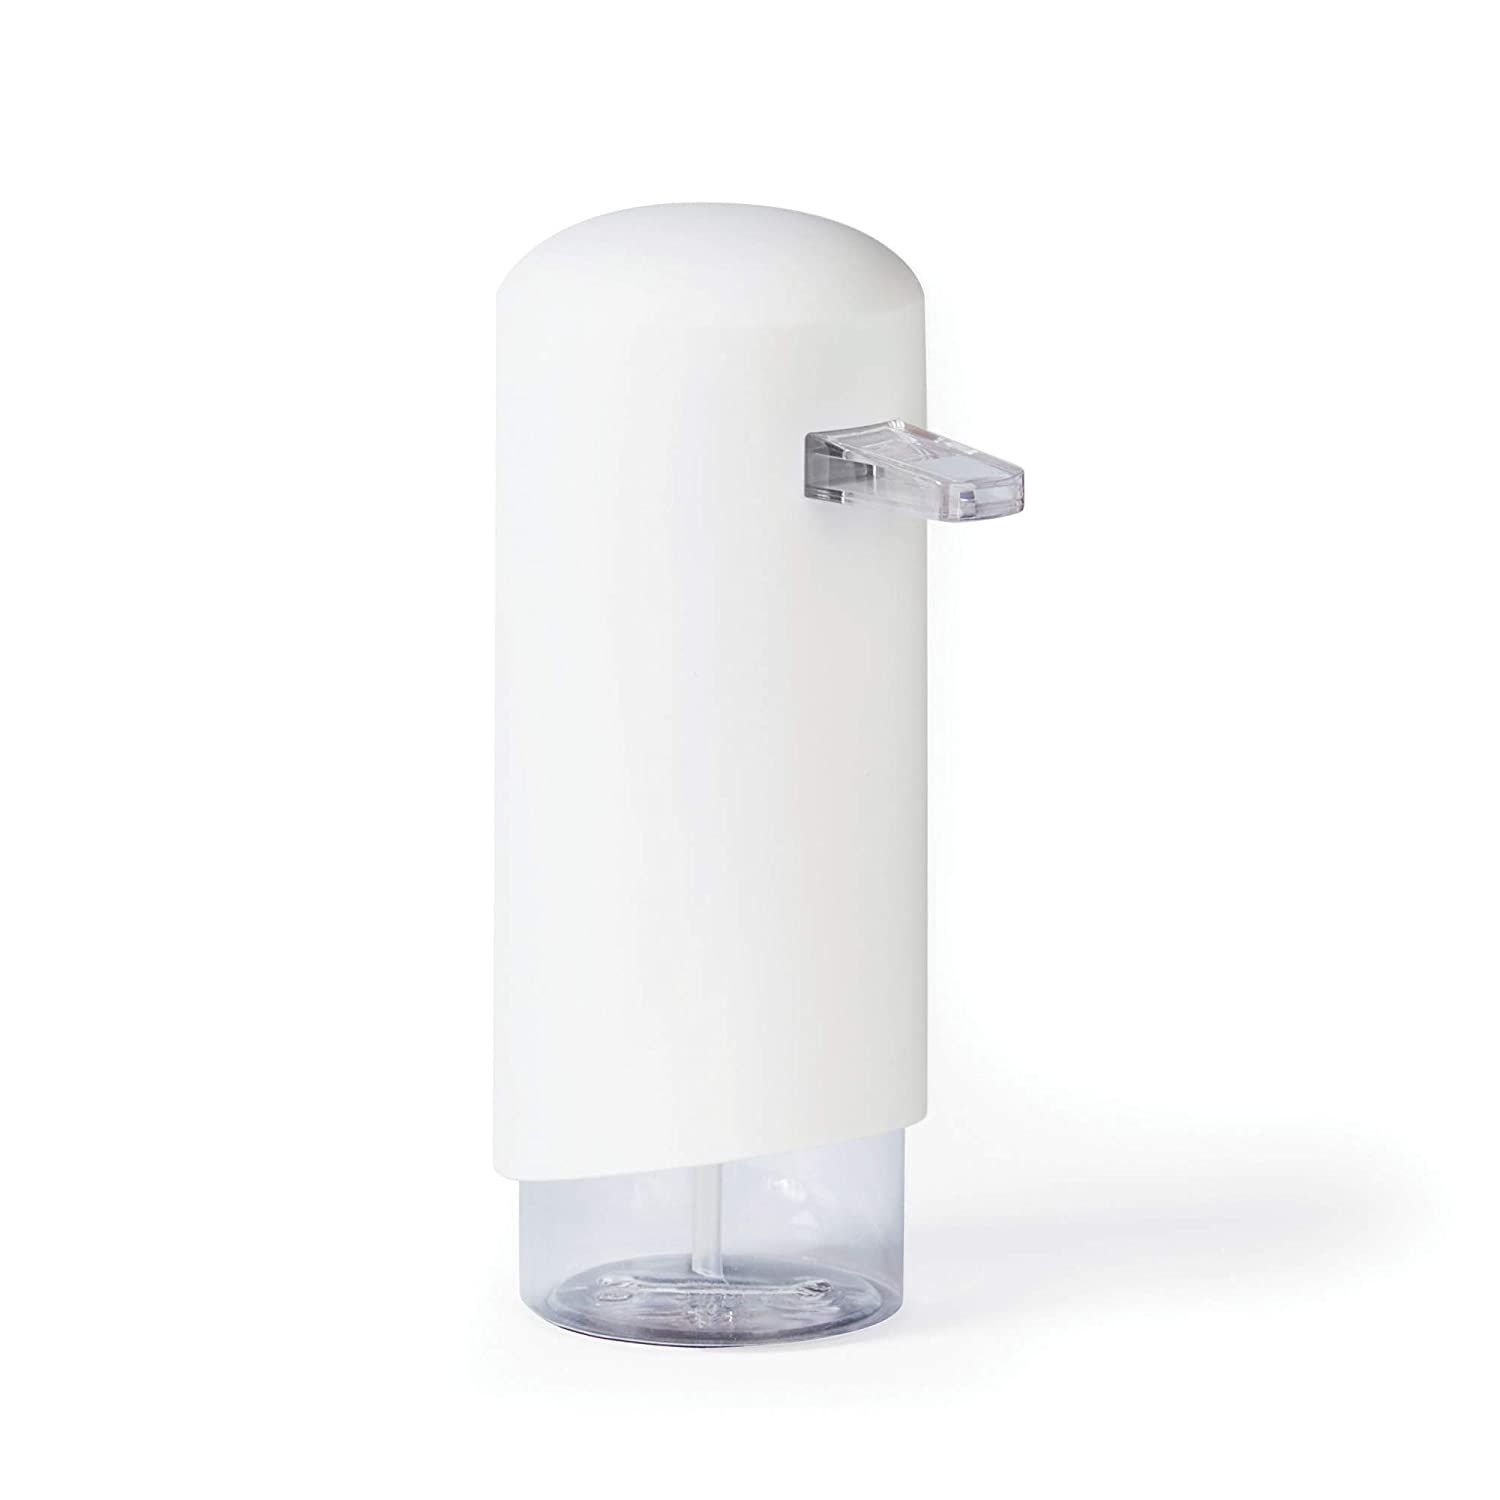 Better Living Products 70250 Foam Soap Dispenser Matte White Better Living Products International Inc